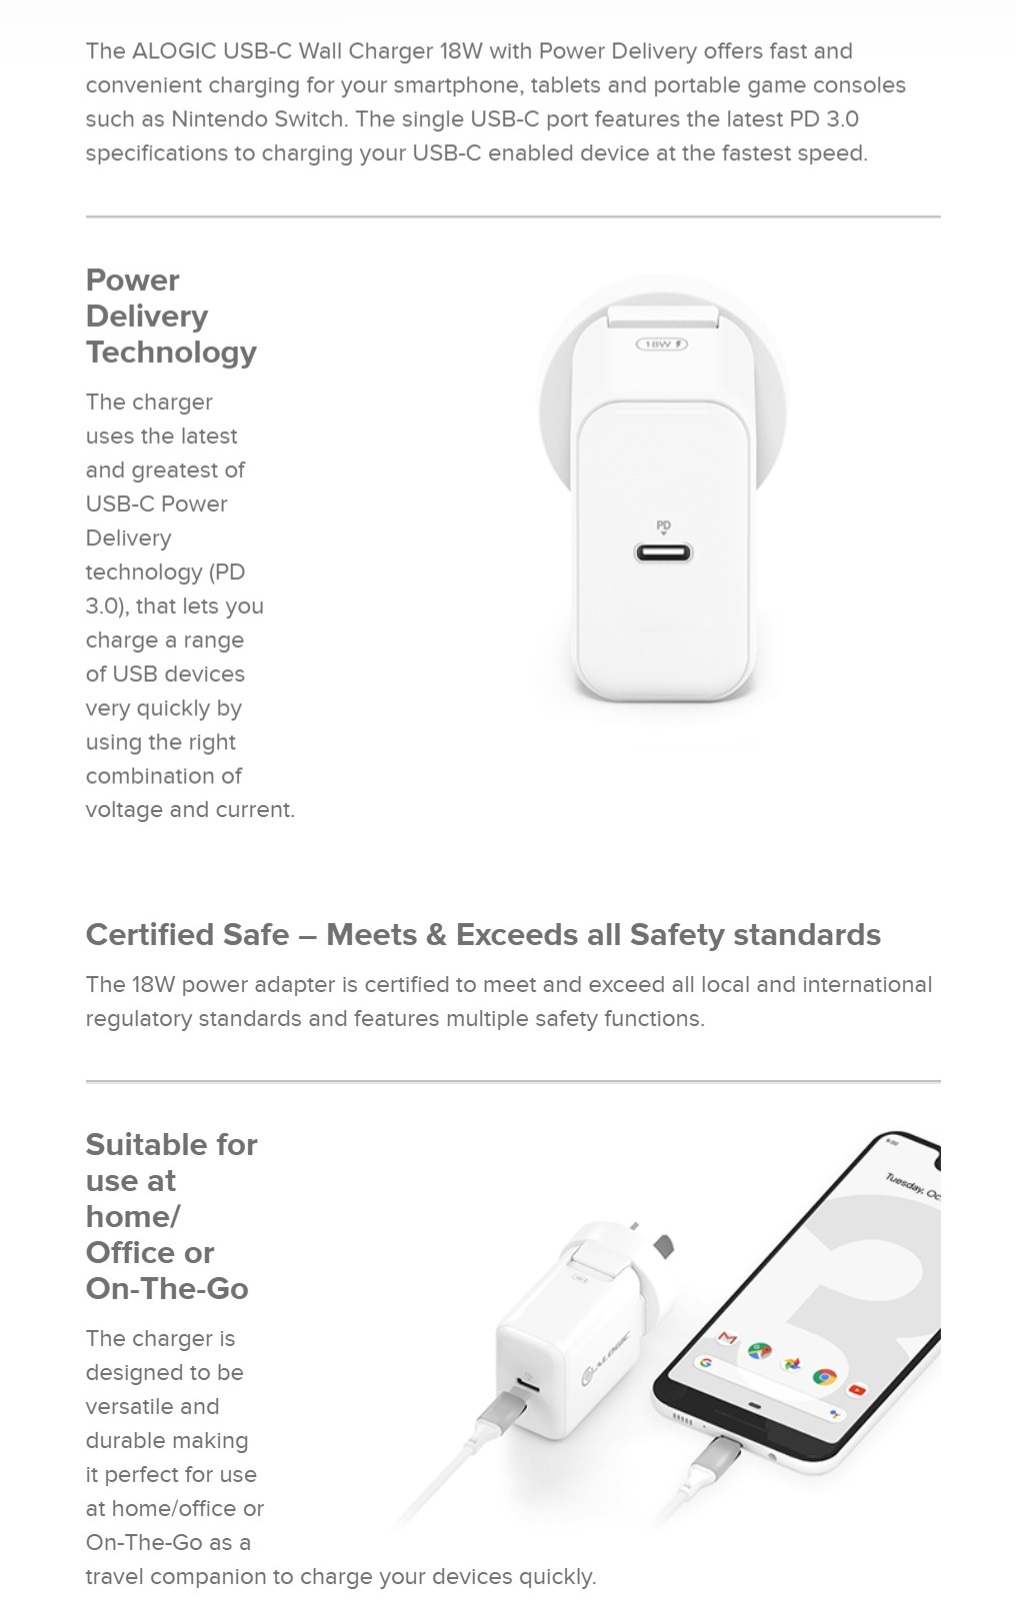 Alogic USB-C Wall Charger 18W with Power Delivery Certified Safety Standard White